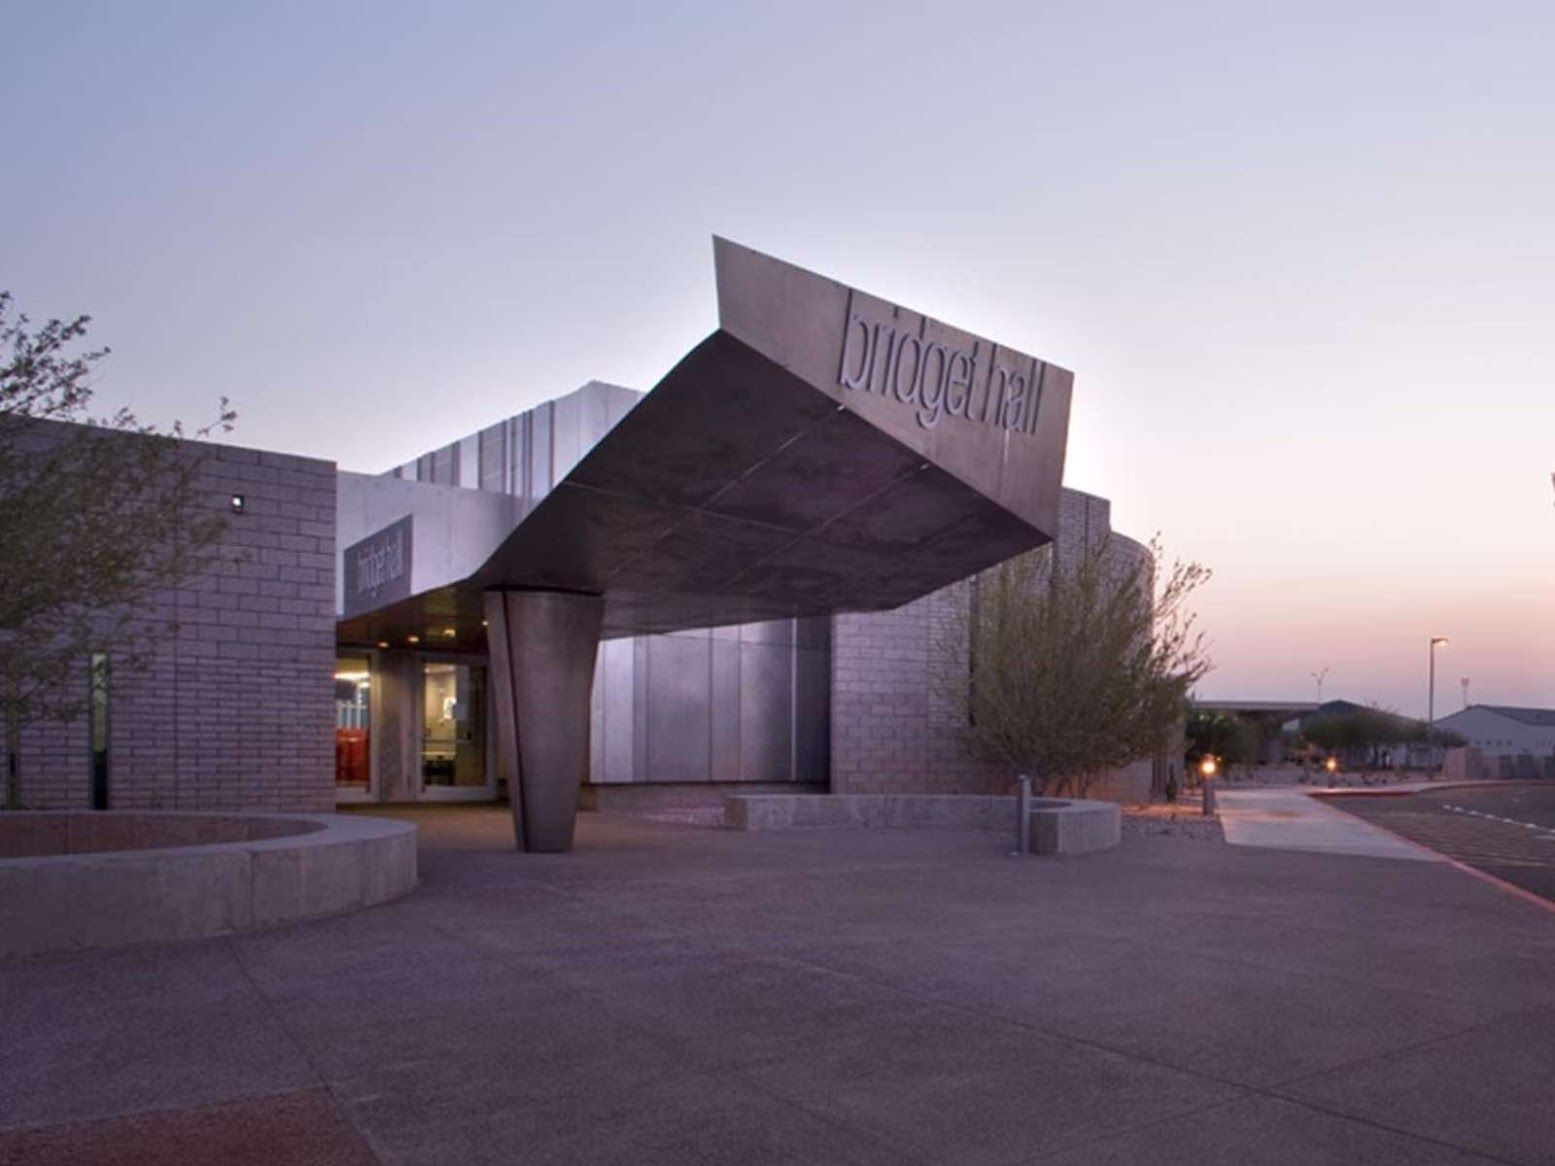 Mesa, Arizona, Stati Uniti: [BRIDGET HALL BY WILL BRUDER ARCHITECTS]